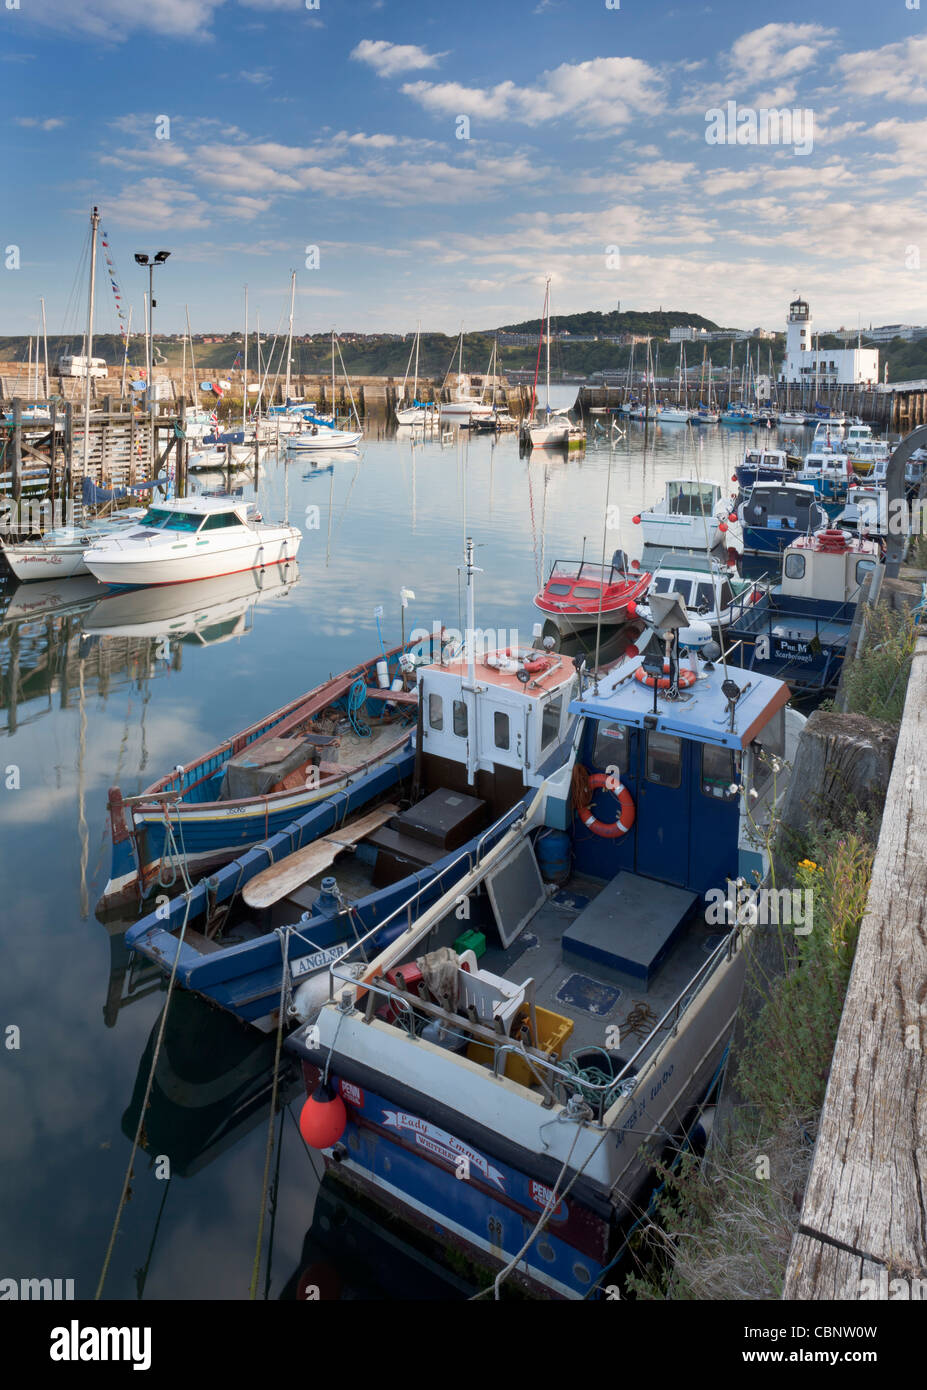 Harbour view of fishing and pleasure boats at Scarborough on the Yorkshire coast. - Stock Image